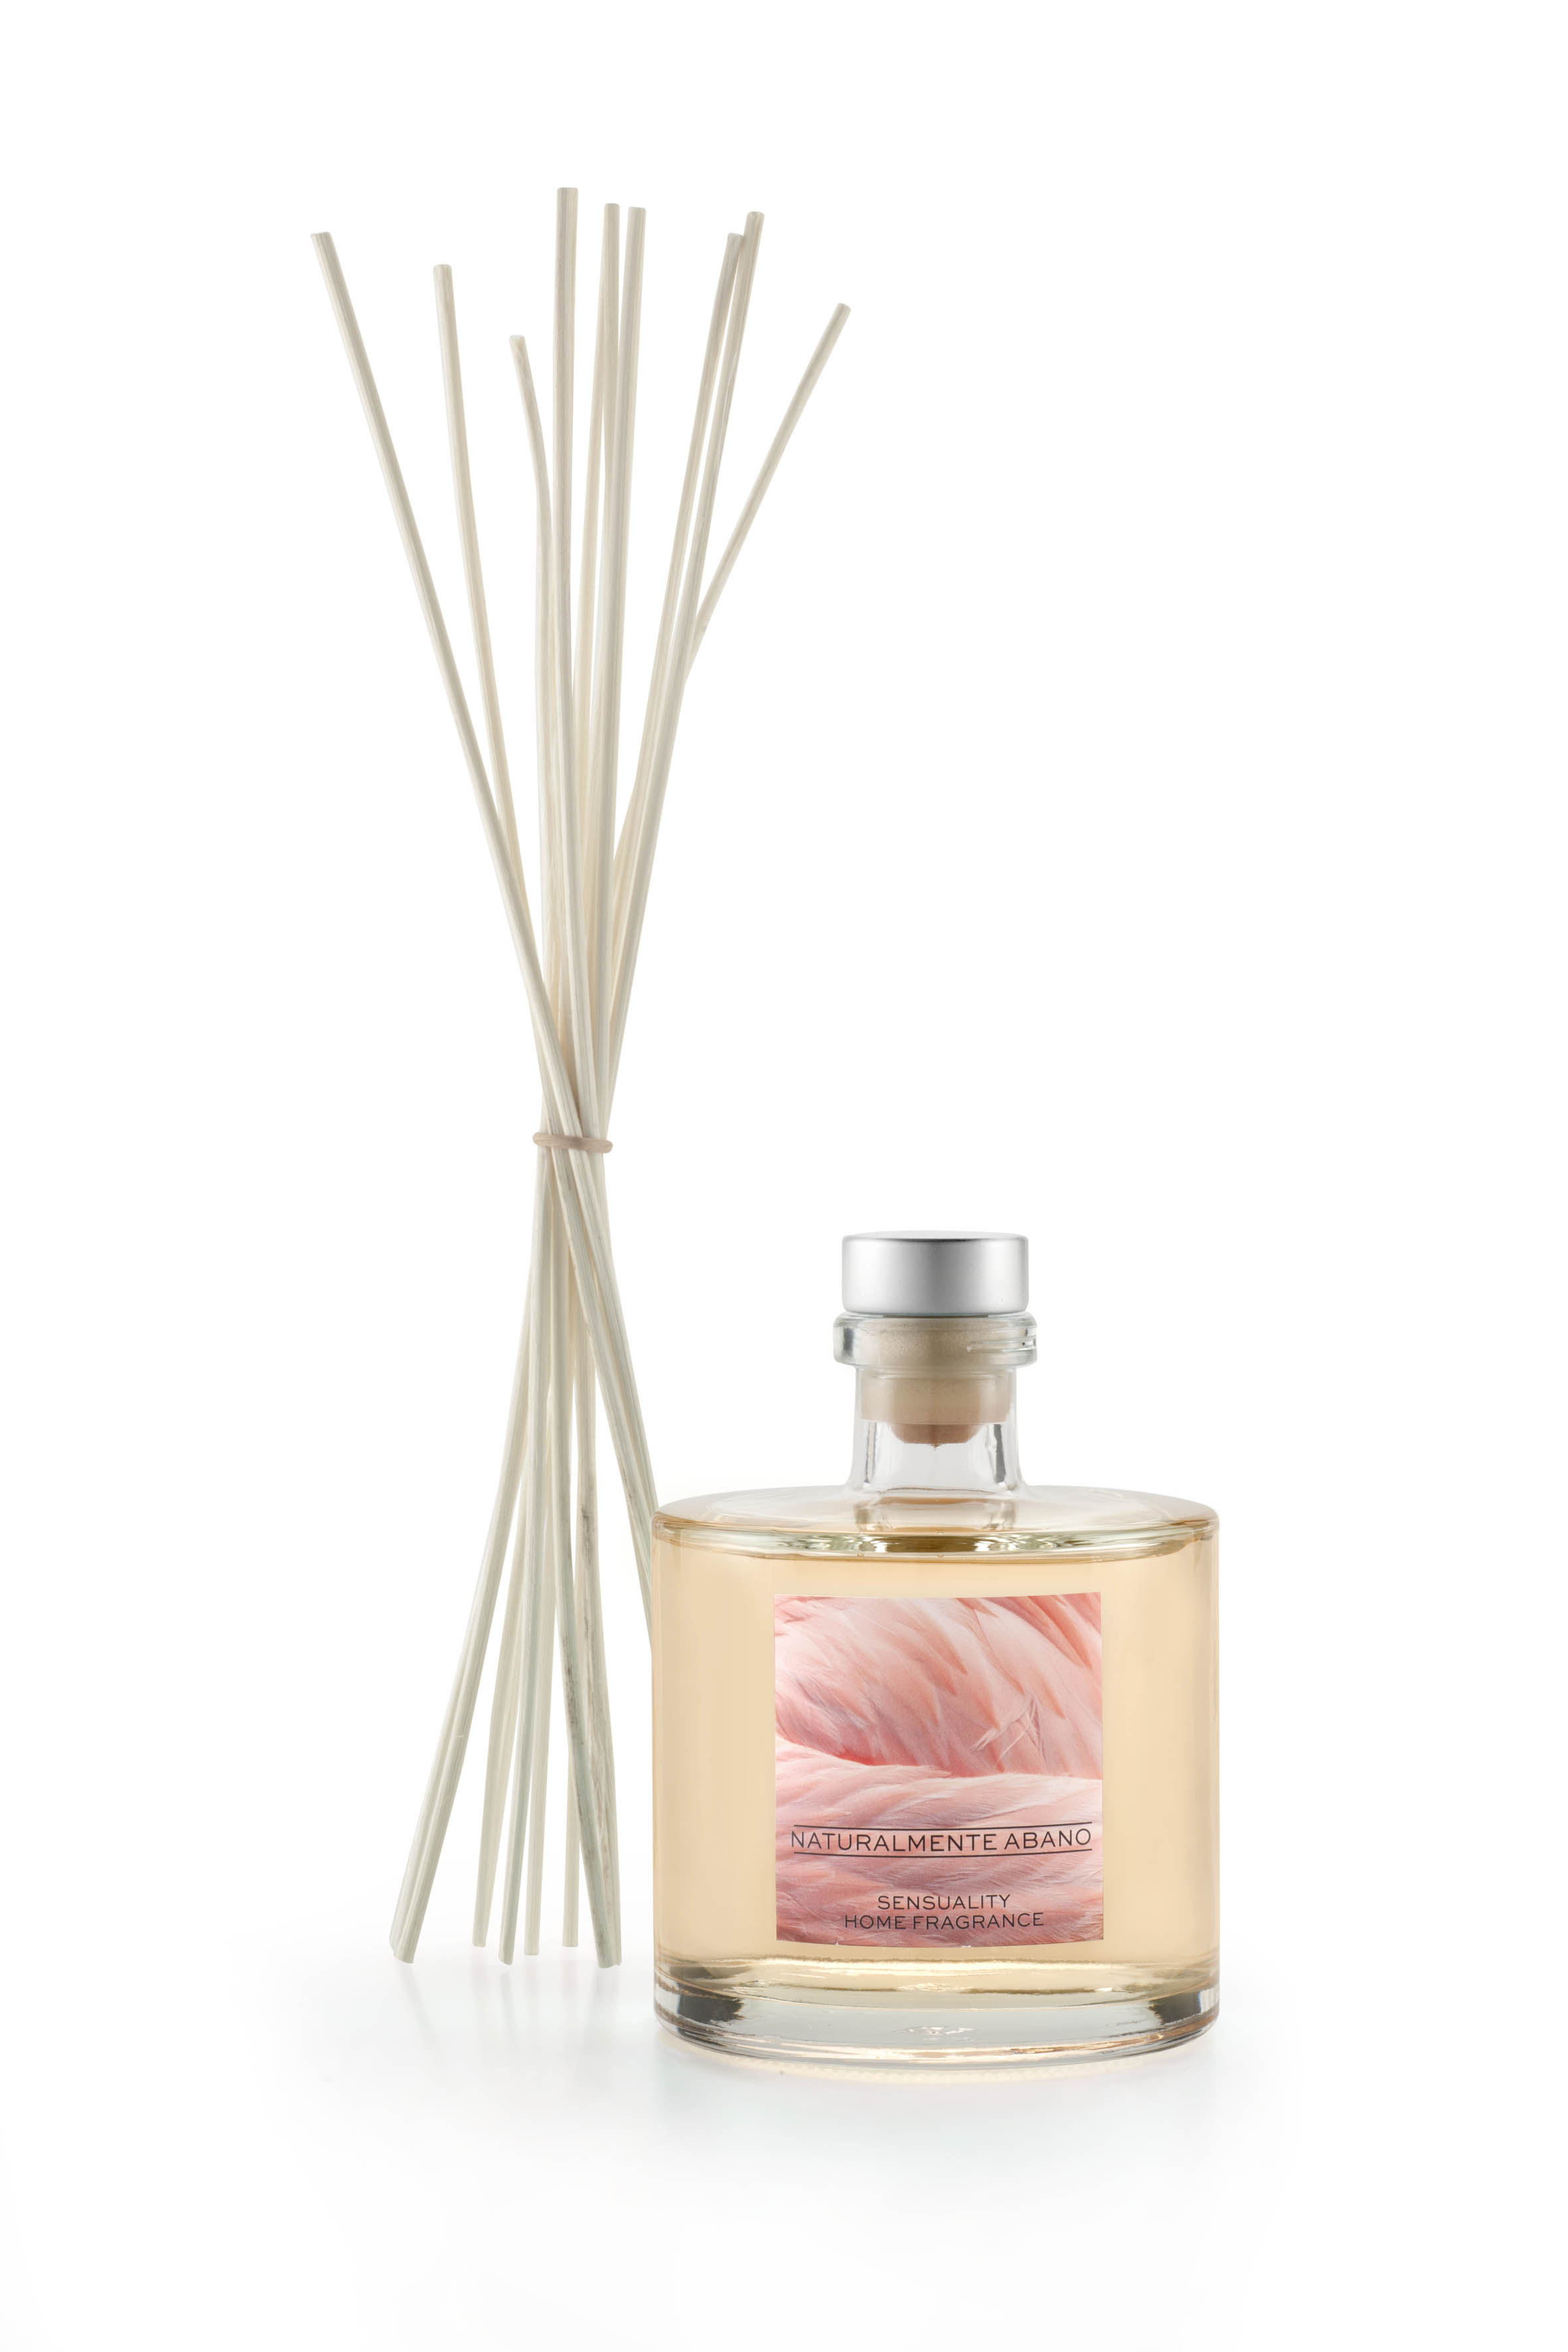 SENSUALITY HOME FRAGRANCE